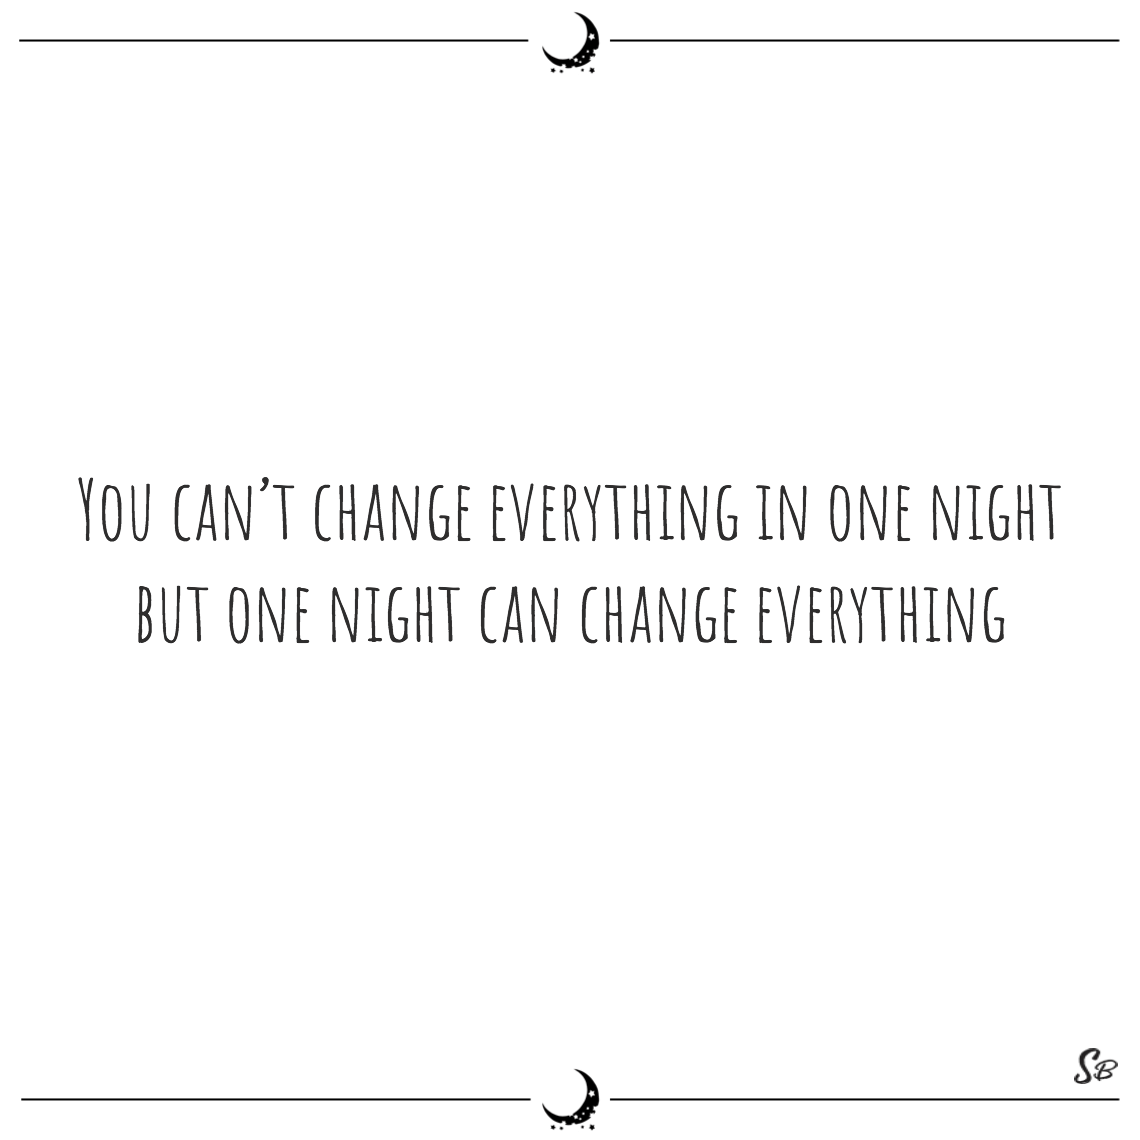 You can't change everything in one night but one night can change everything john updike